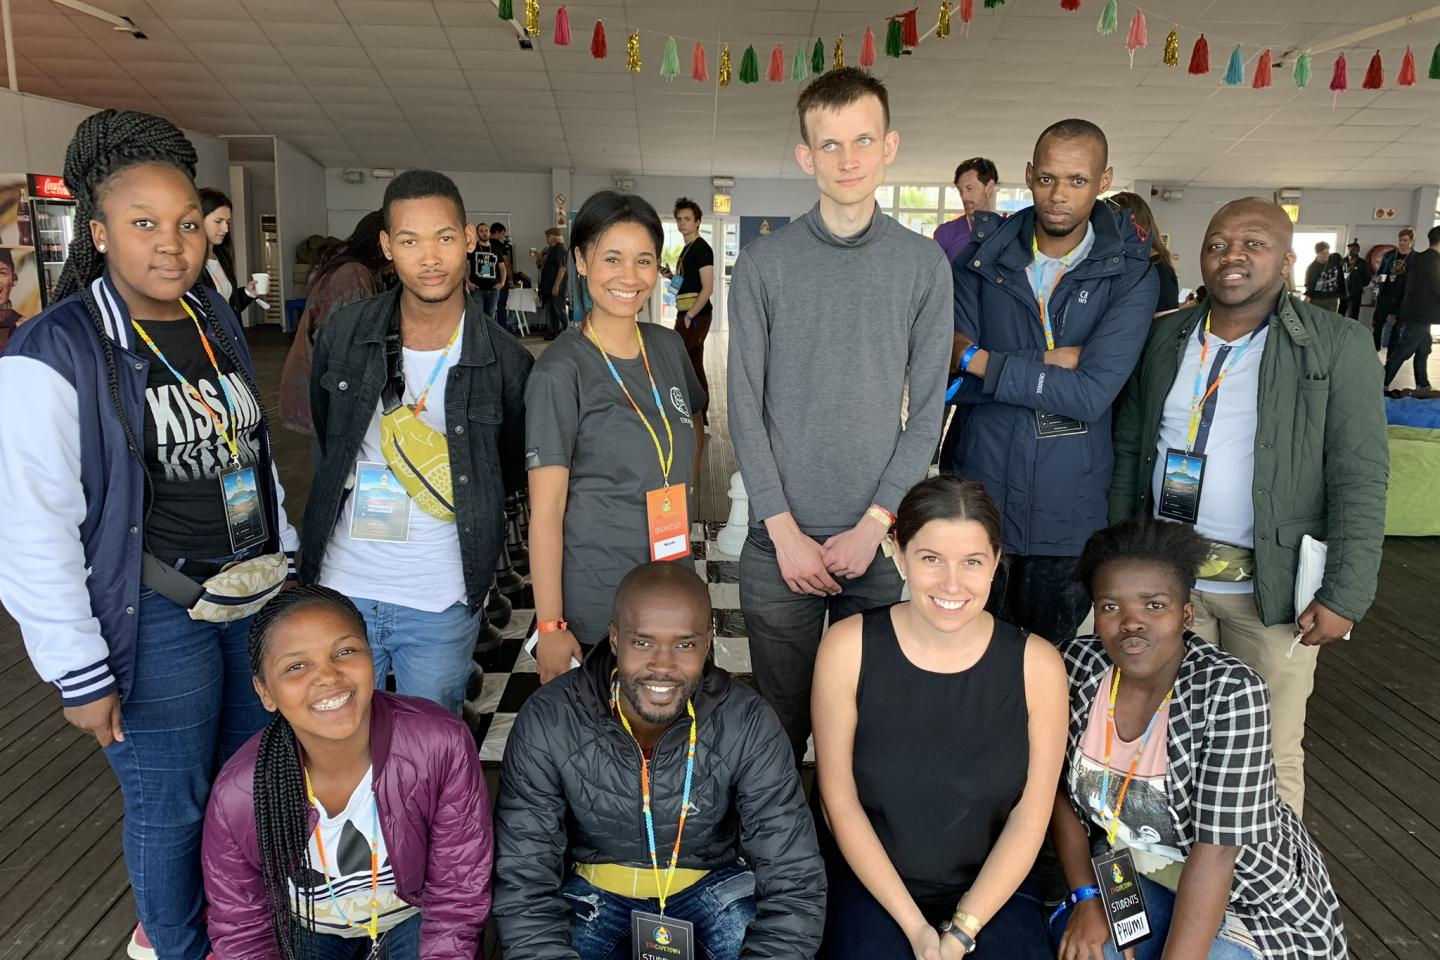 SURGE Cape Town students with Vitalik Buterin, the founder of Ethereum